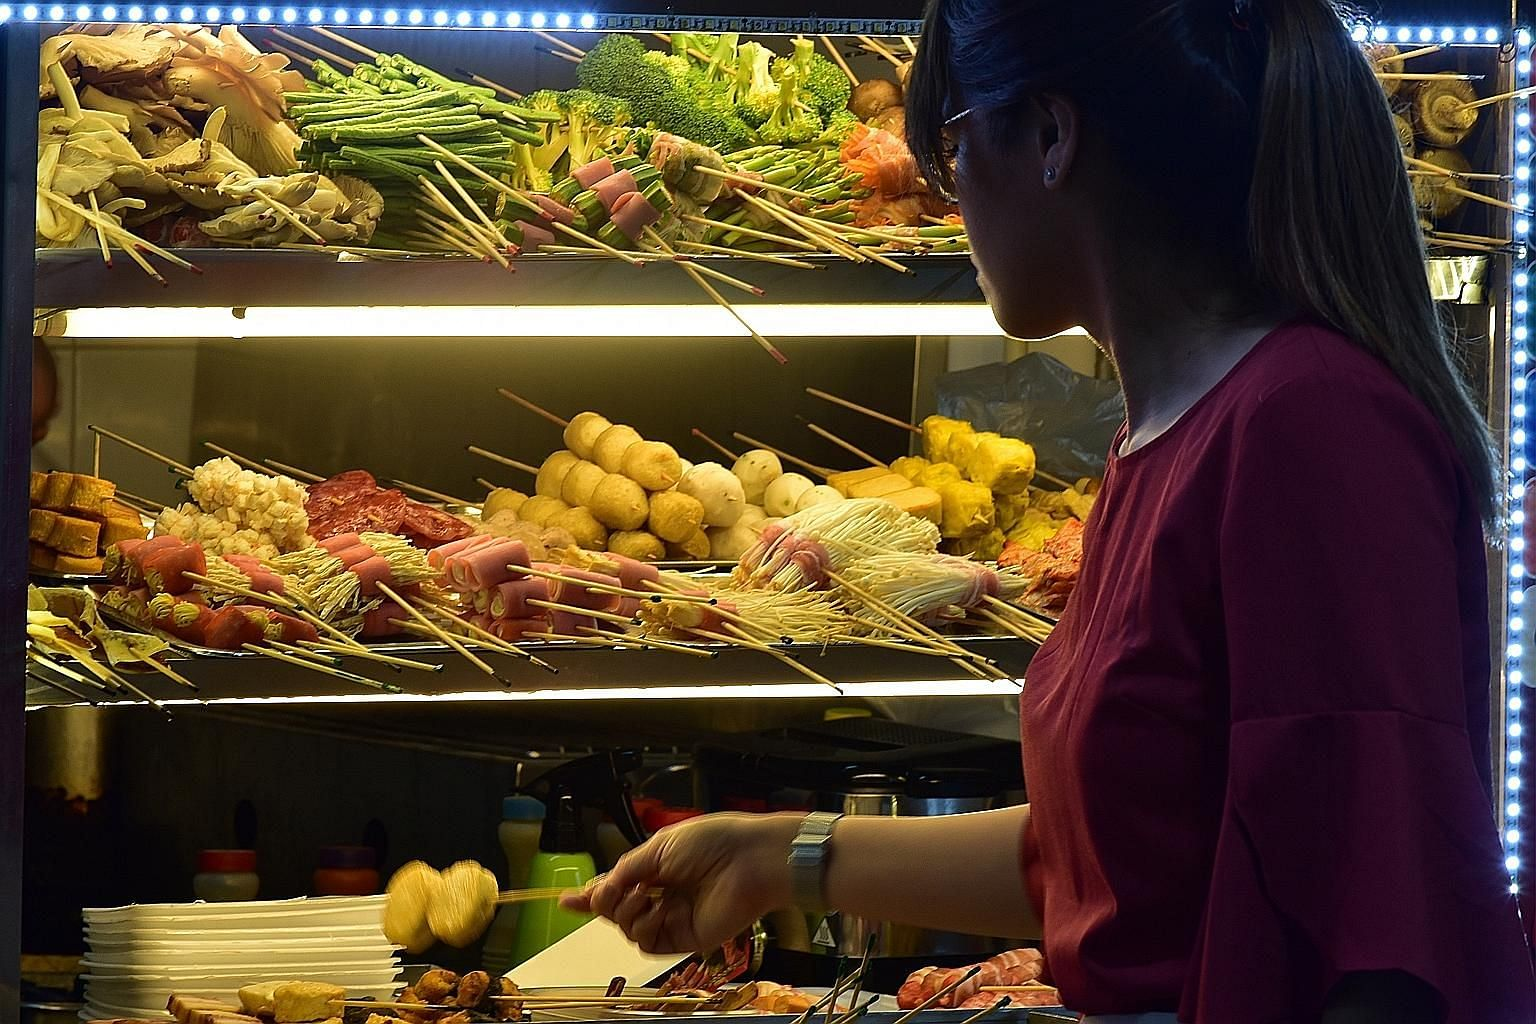 Food prices rose 1.7 per cent last month on the back of a faster pace of increase in the prices of non-cooked food items and prepared meals.